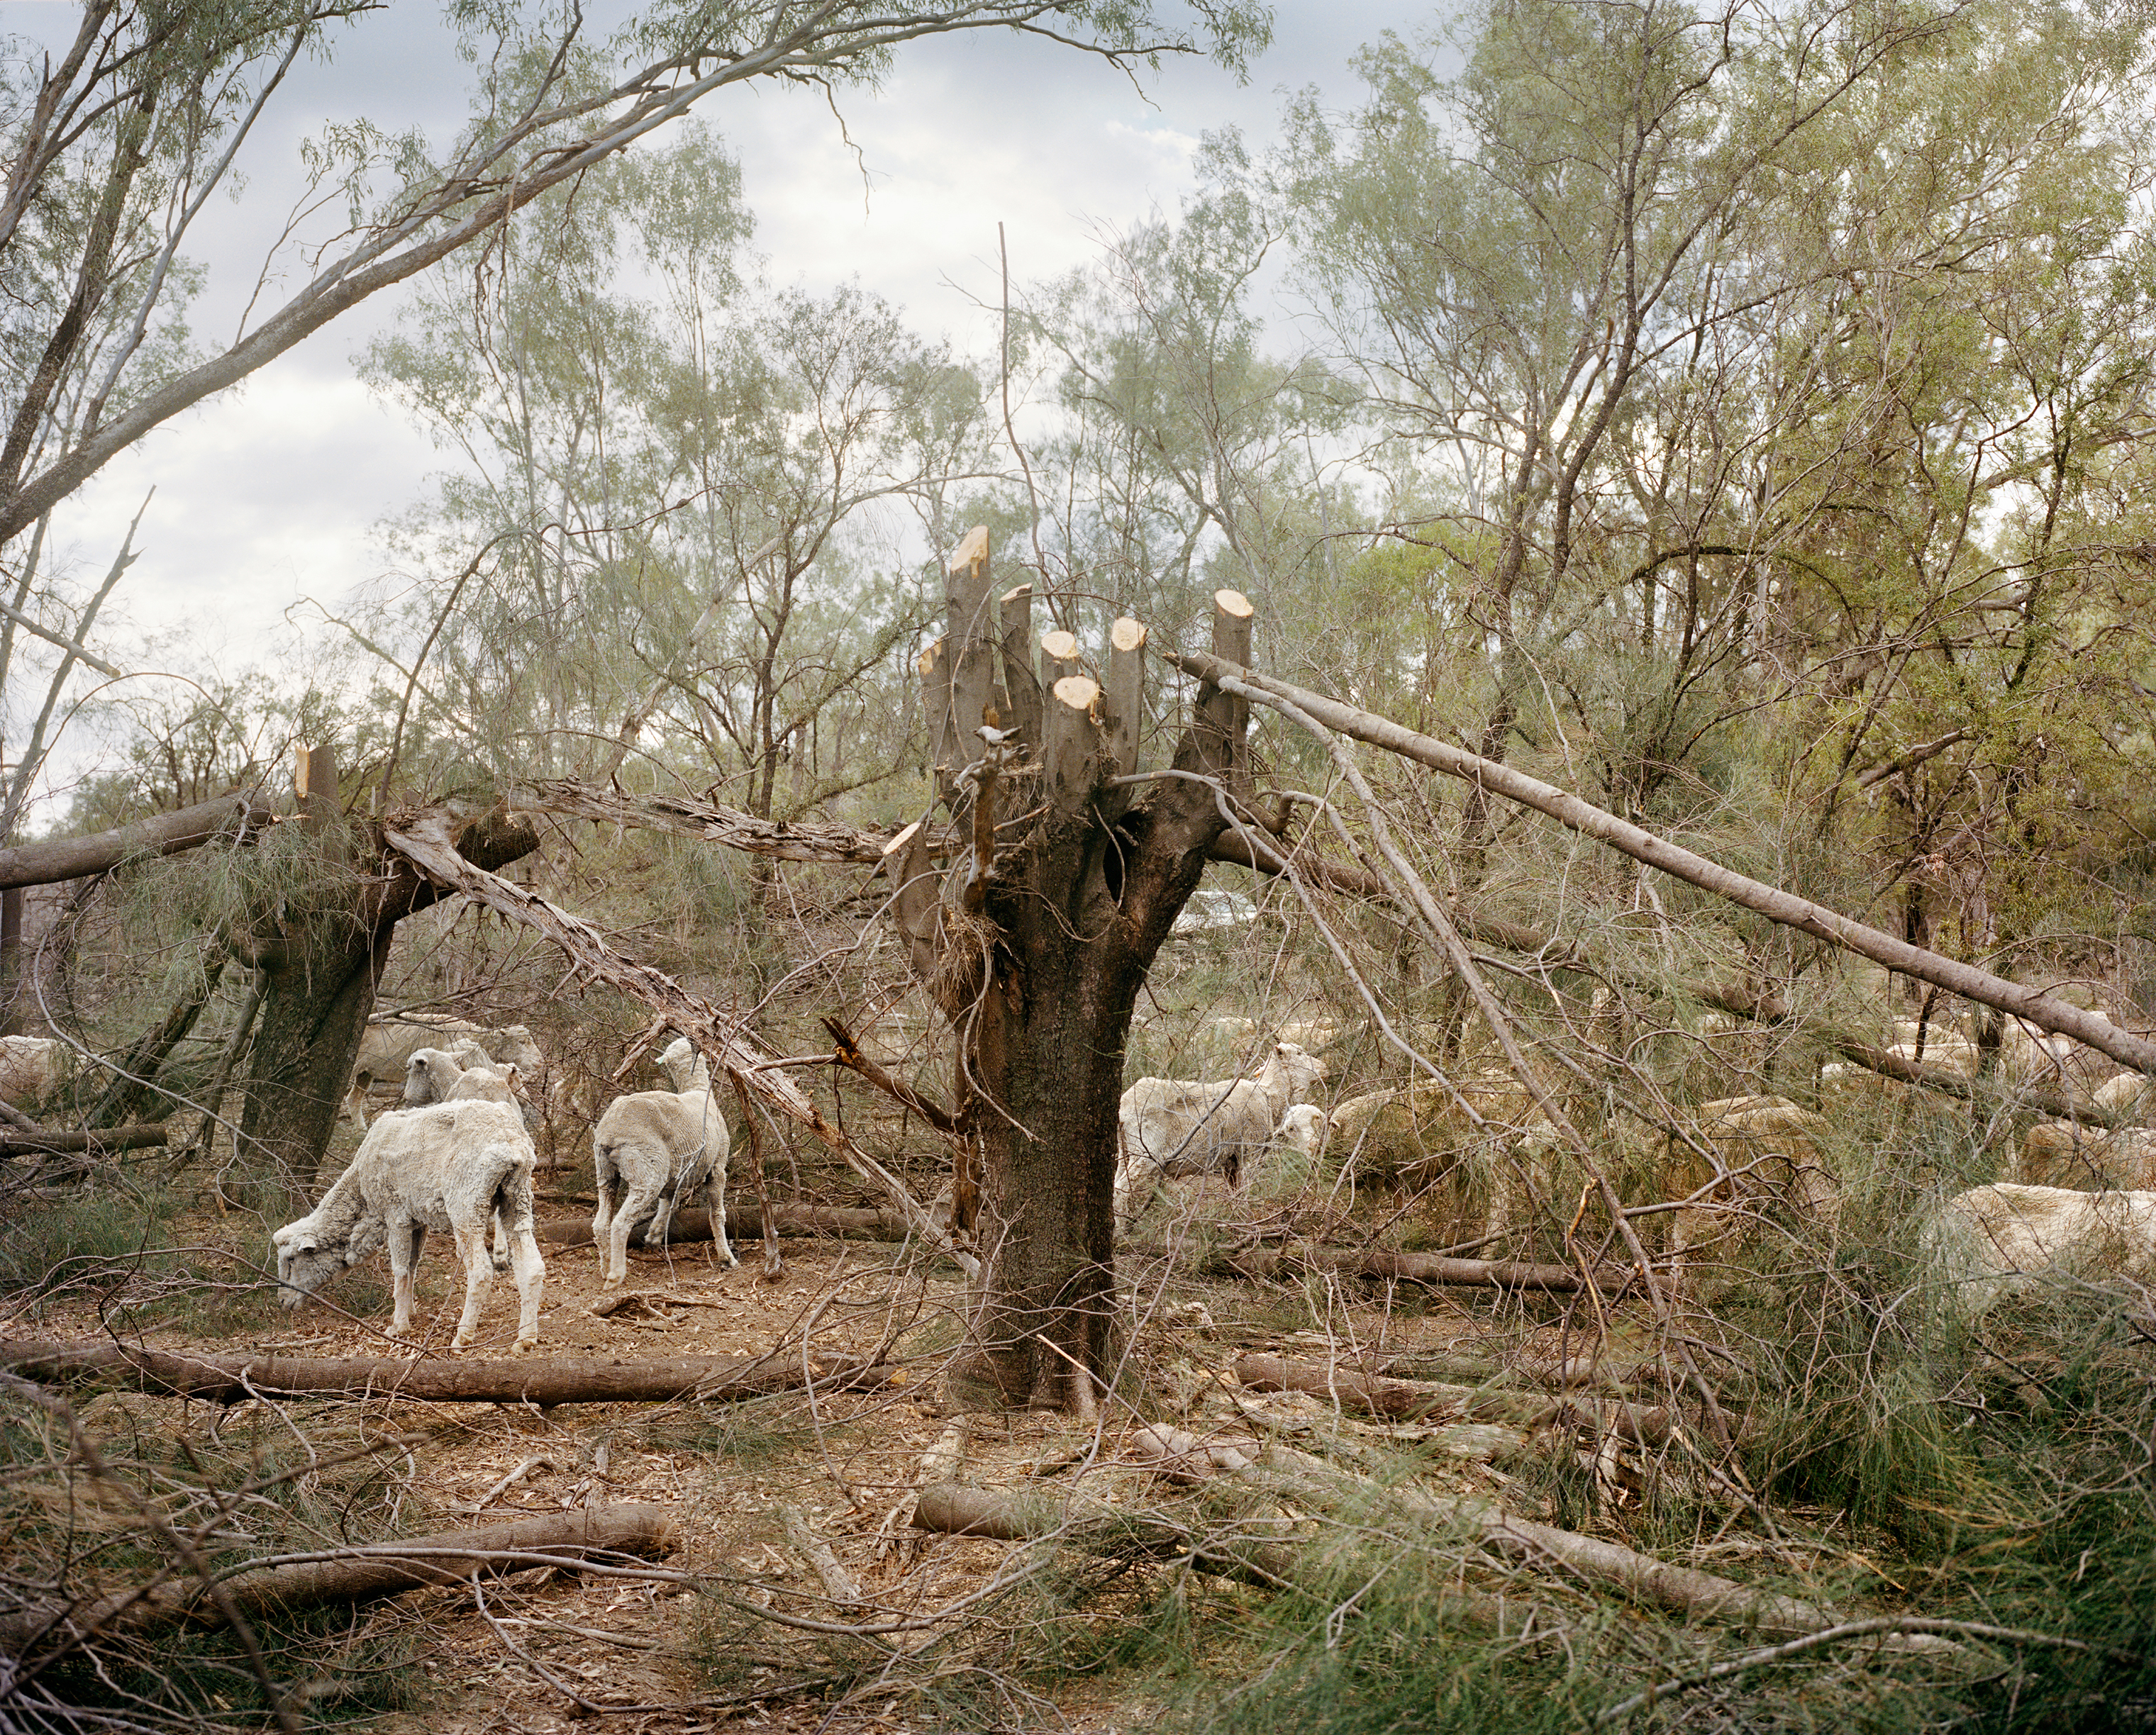 Sheep graze on branches cut by farmer David Cross on a farm near Hebel, along the New South Wales-Queensland border, in November. Cross chops the branches or whole trees several times a week, instead of buying costly feed.